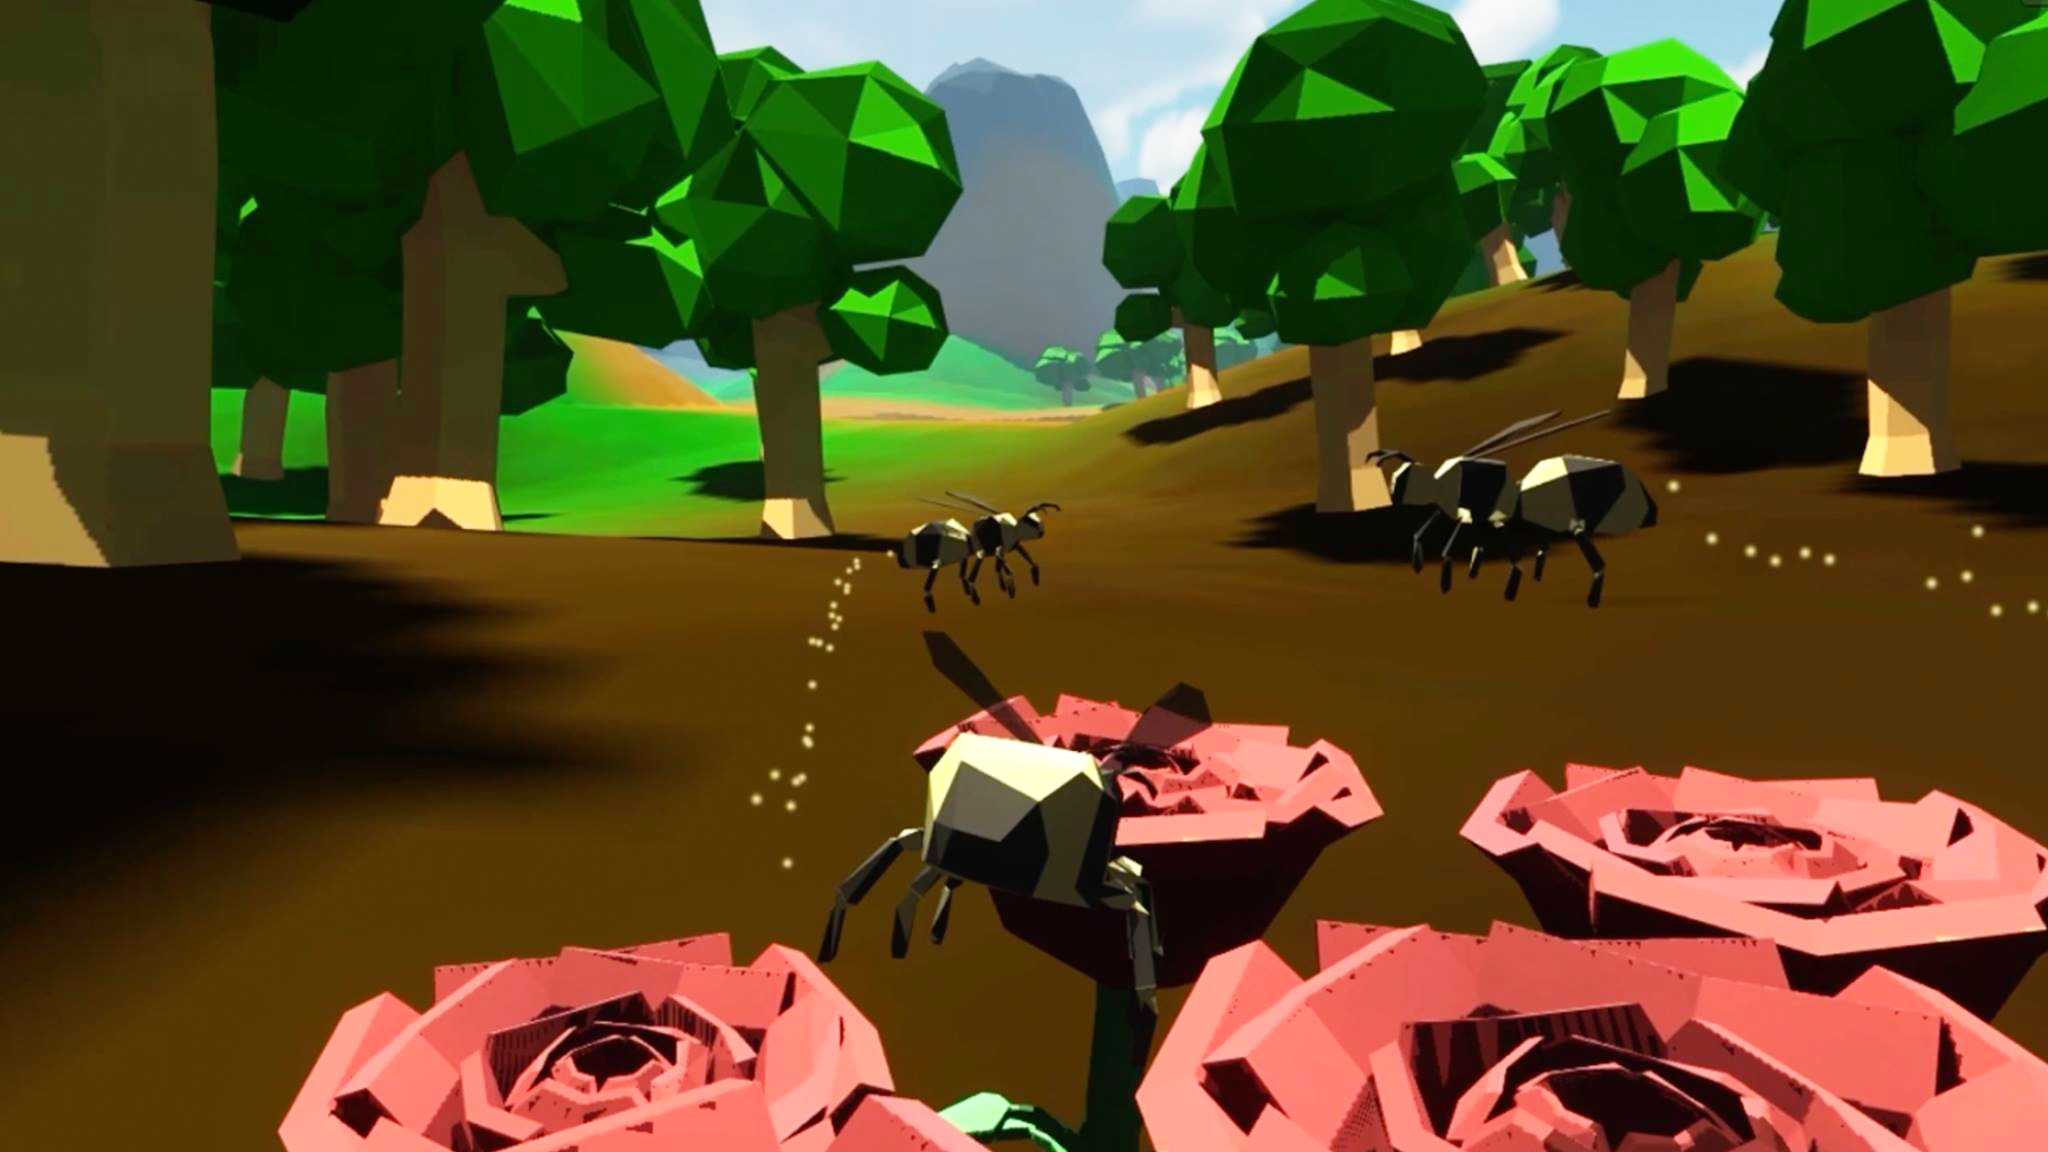 11002220 10153148939007783 1397498876 o Procedural games about bees